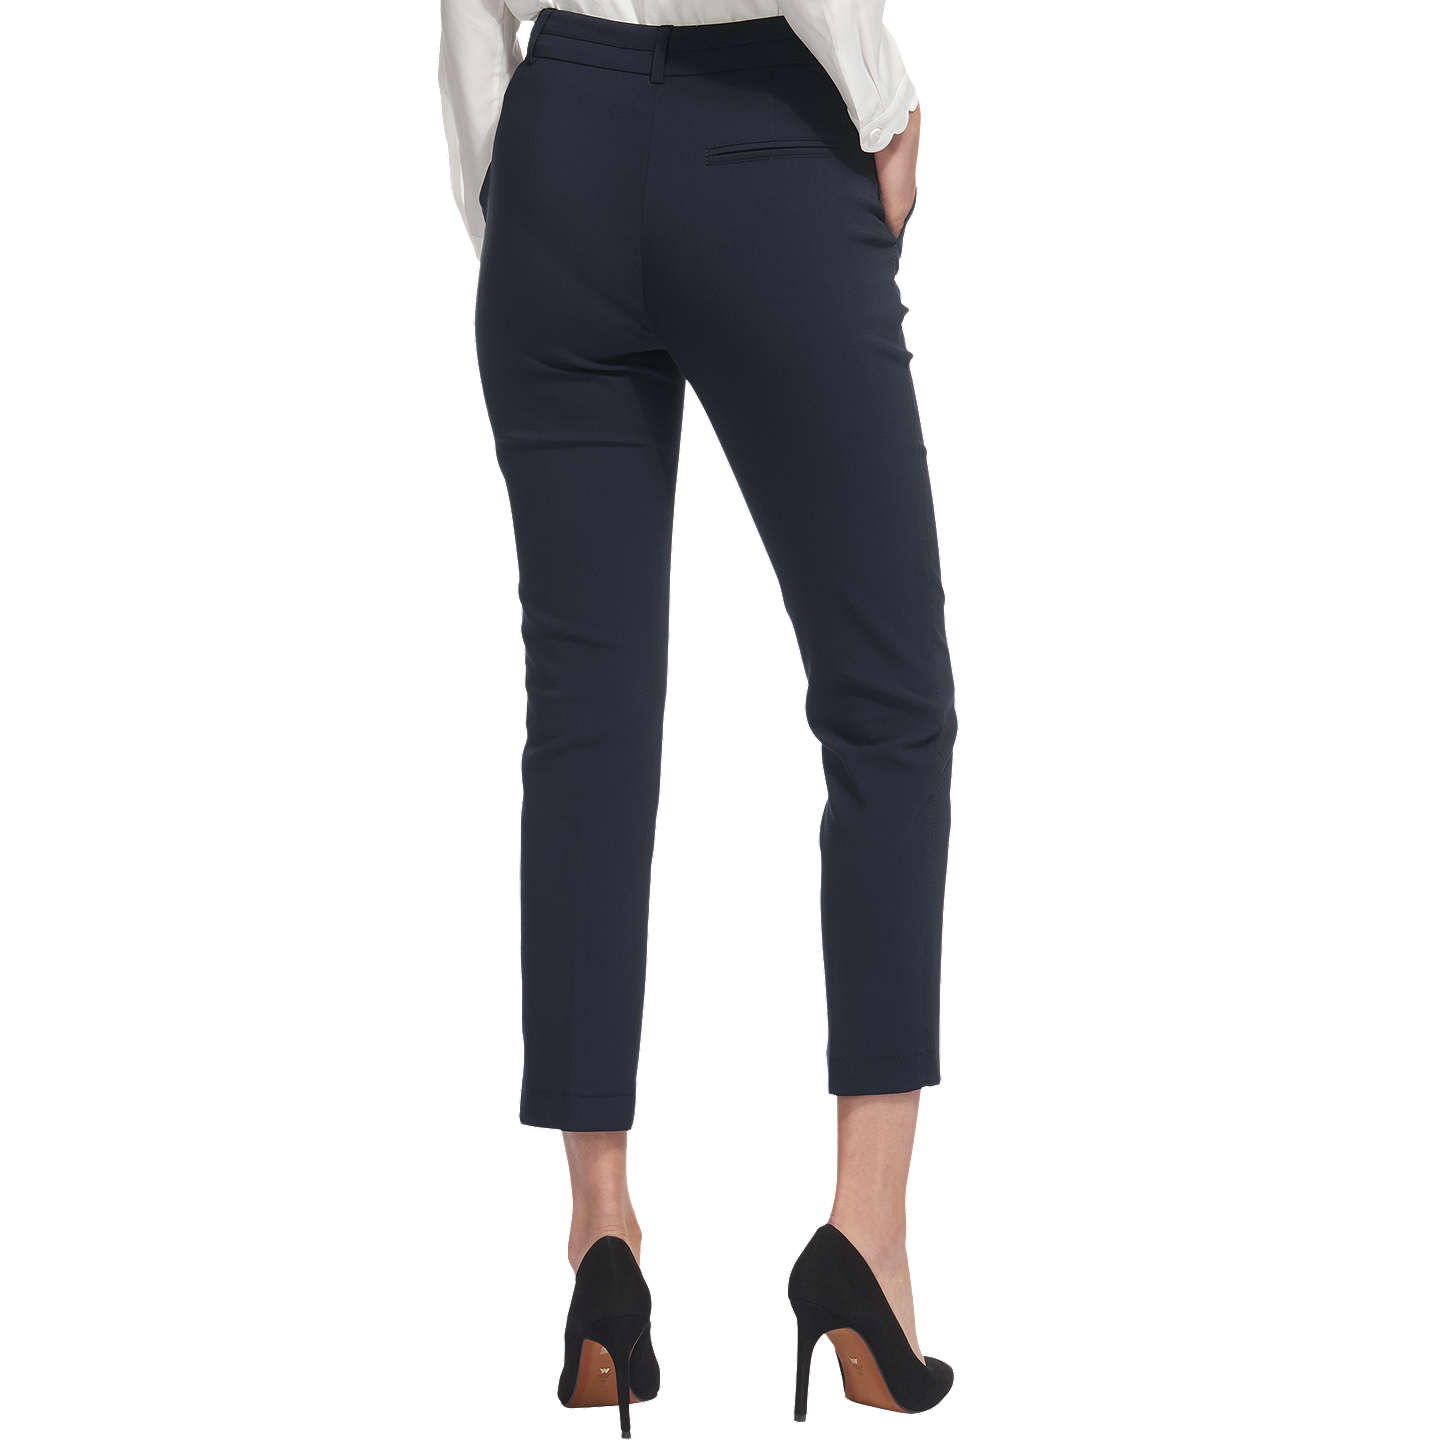 BuyWhistles Sadie 2 Slim Leg Trousers, Navy, 6 Online at johnlewis.com